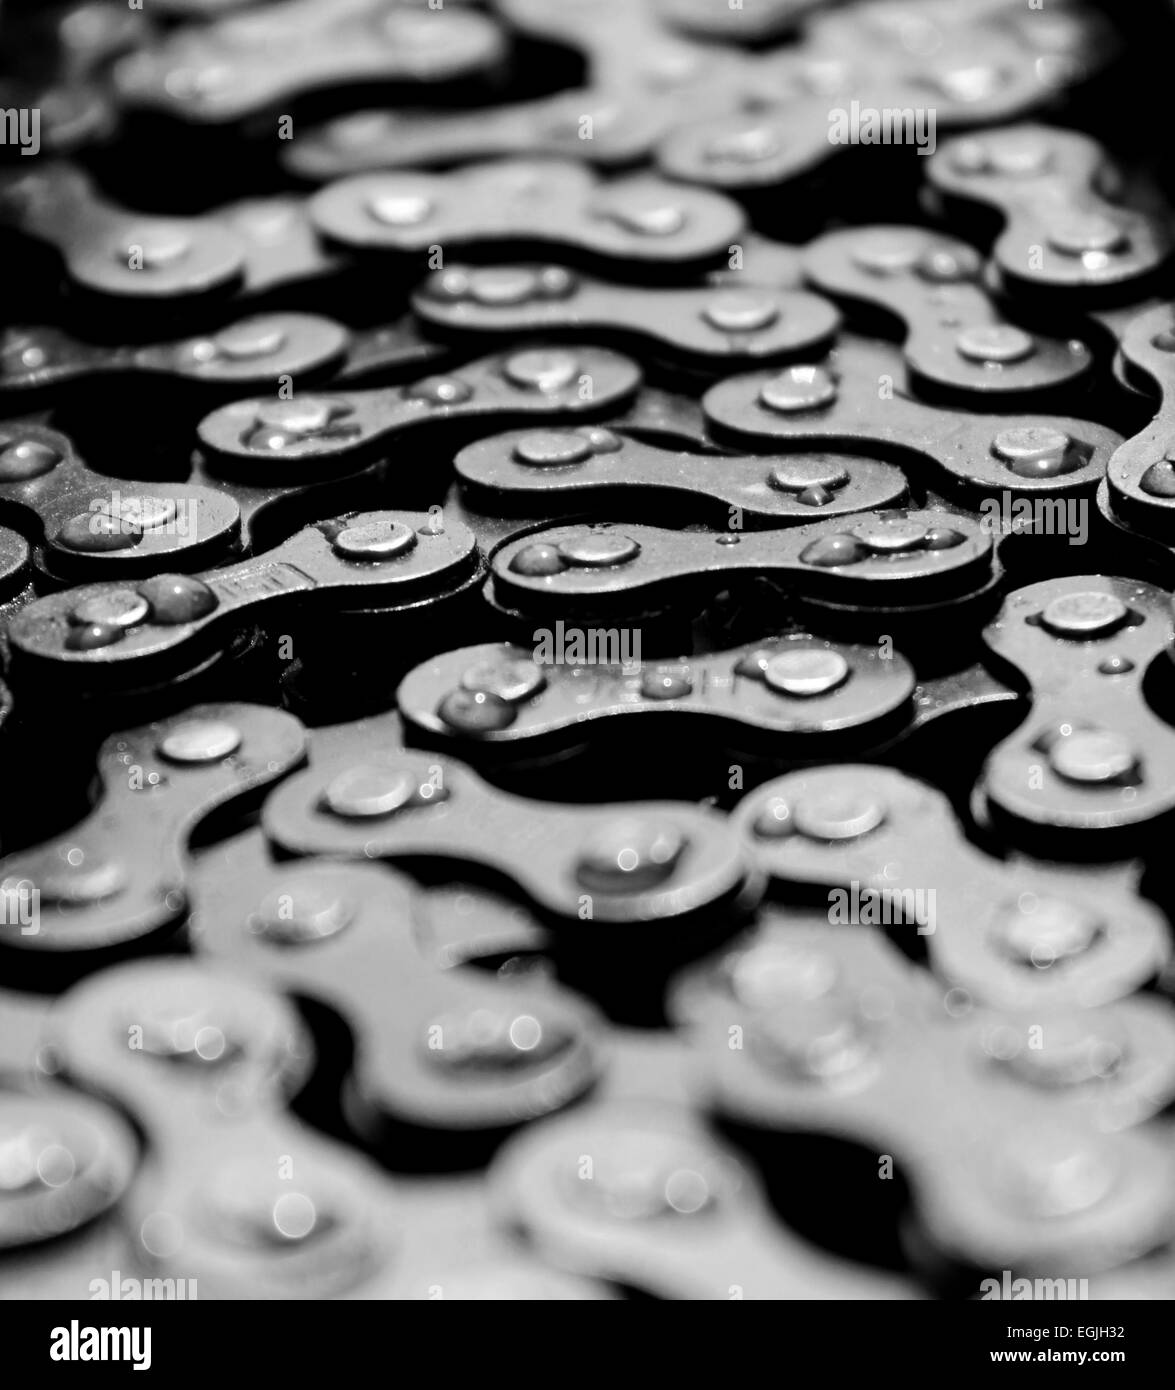 Chains - Stock Image